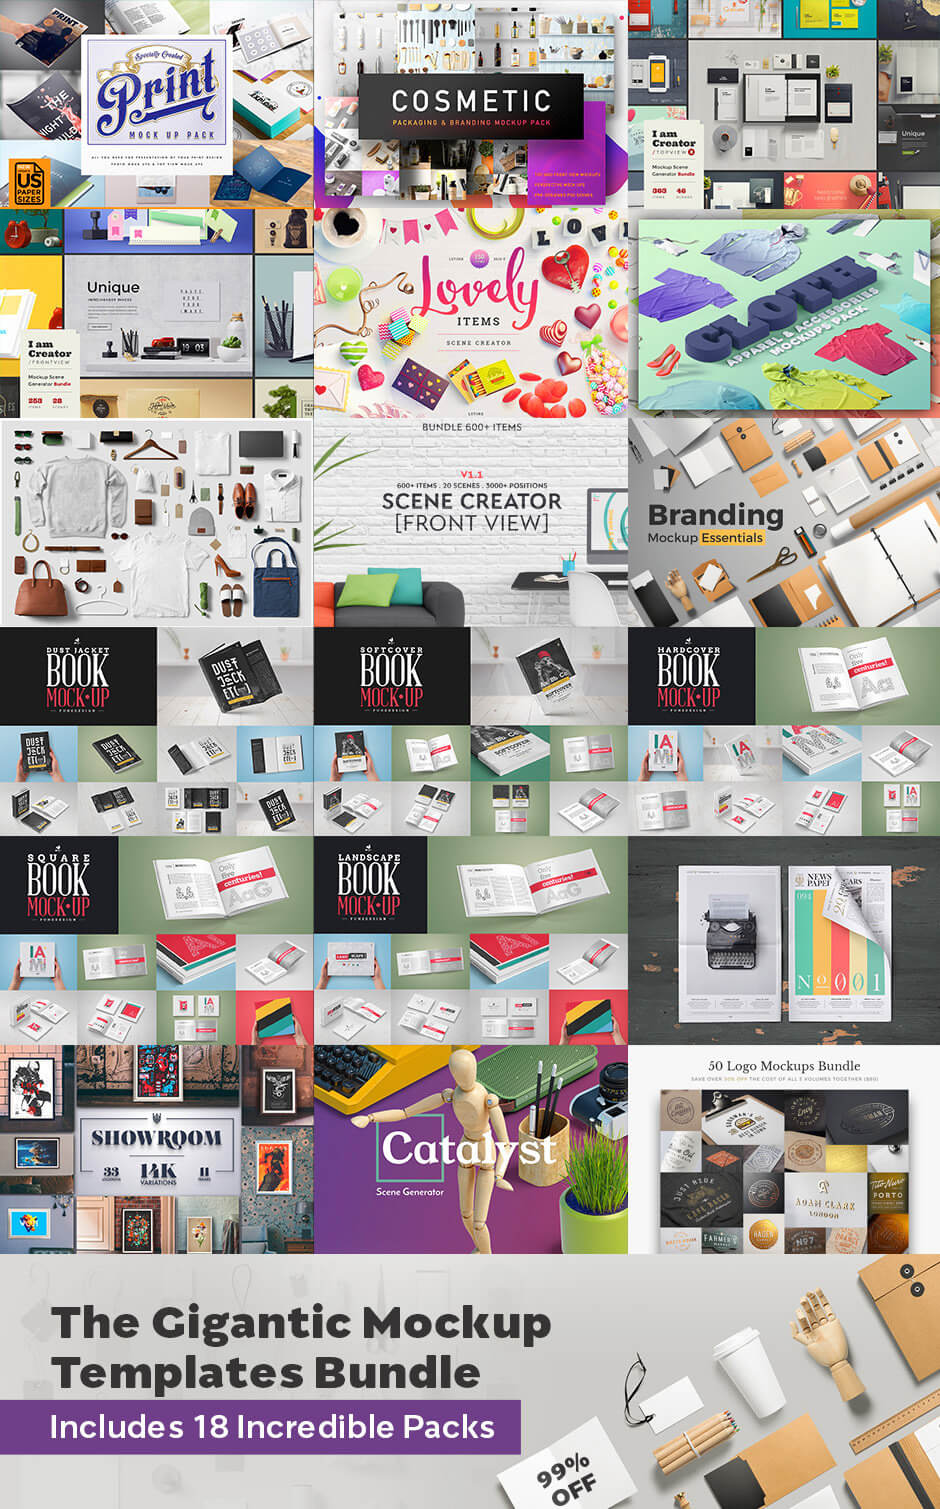 Gigantic Mockup Template Bundle